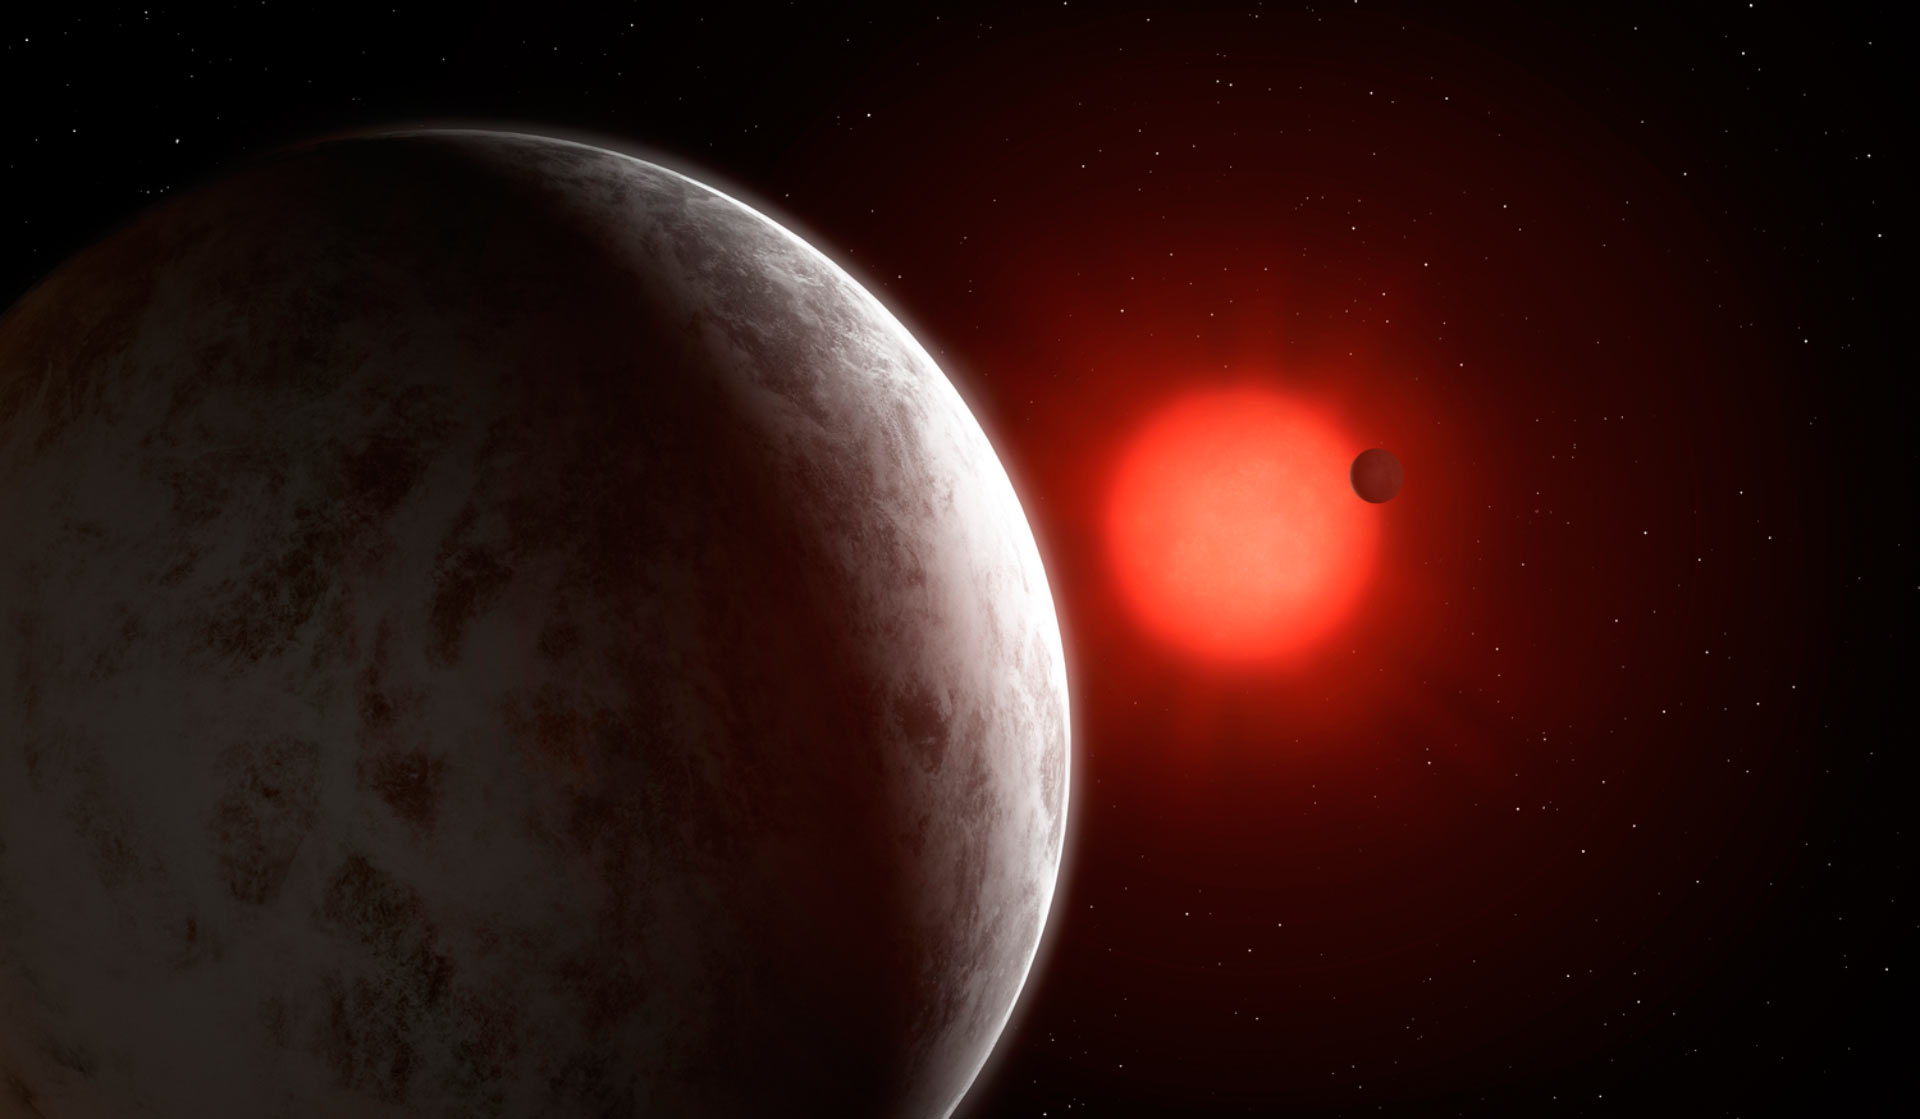 Astronomers have discovered two super-Earths orbiting the star of 11 light-years